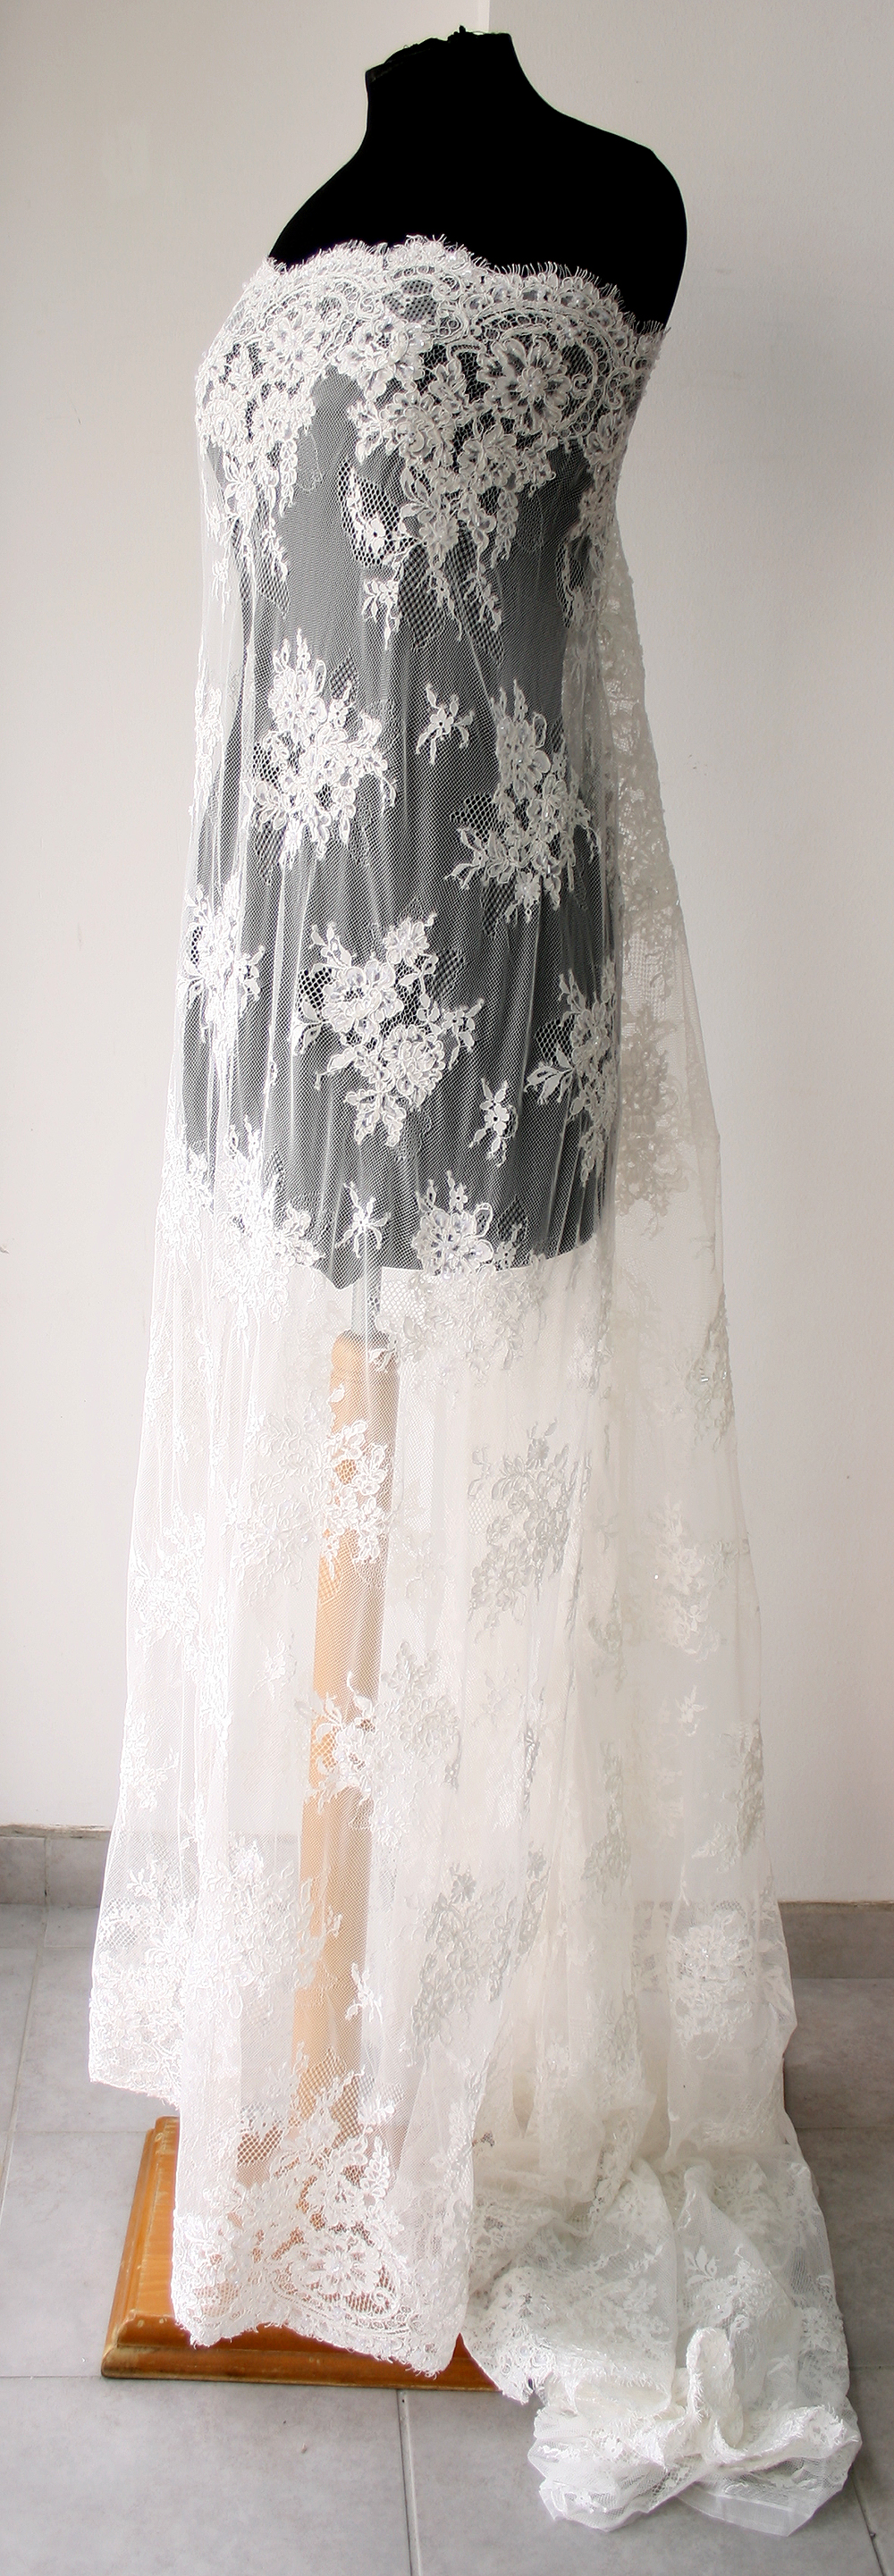 White Bridal Lace fabric wedding dress veil gown tulle ...